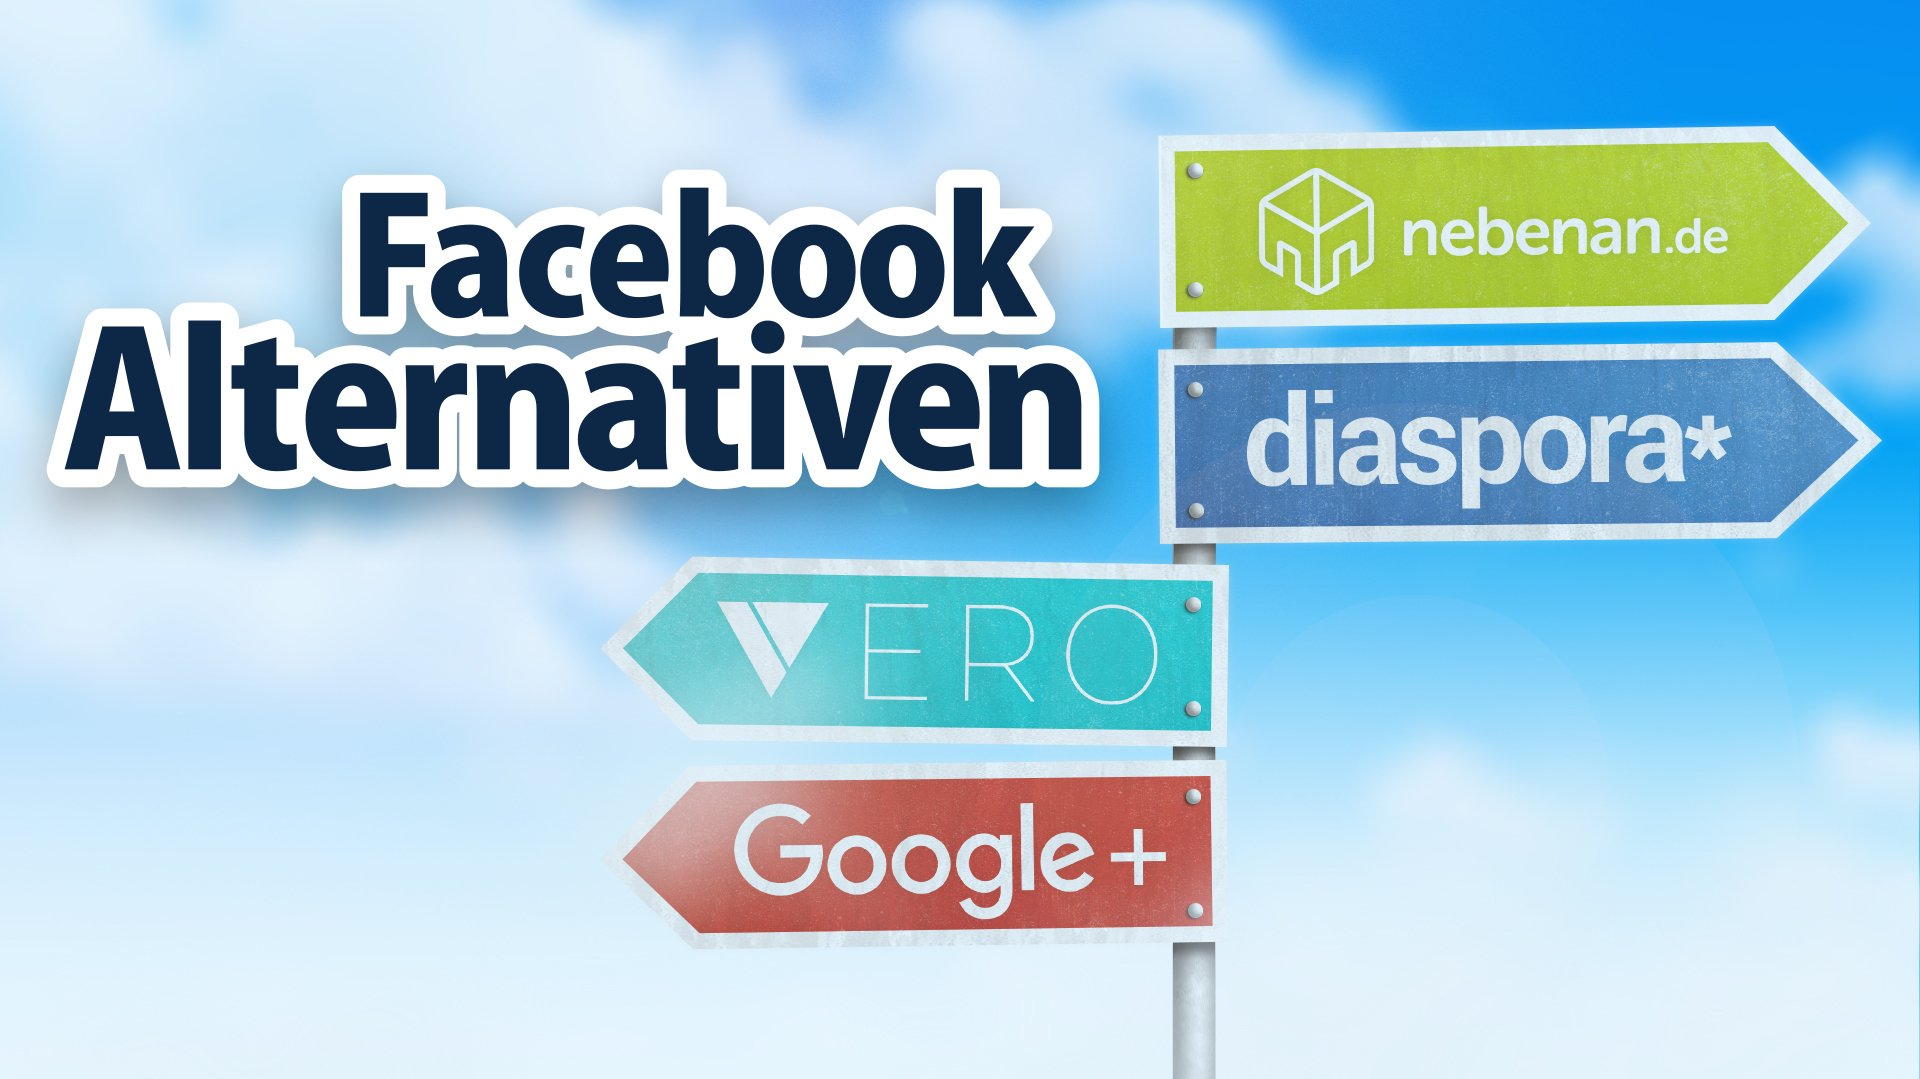 Die besten Facebook-Alternativen